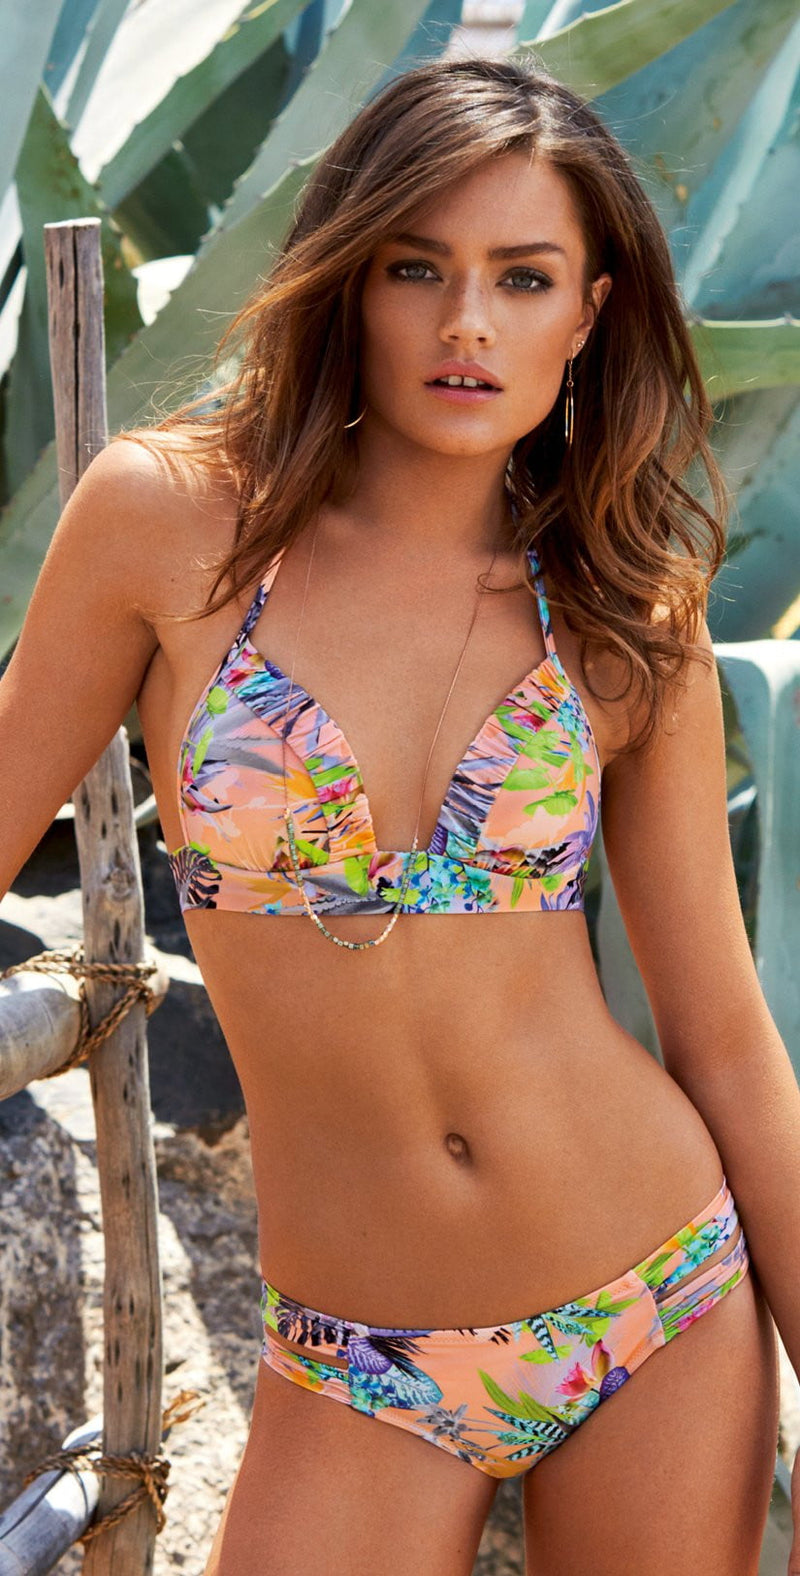 Watercult Exotic Jungle Bikini Top in Apricot 7663-165-673: